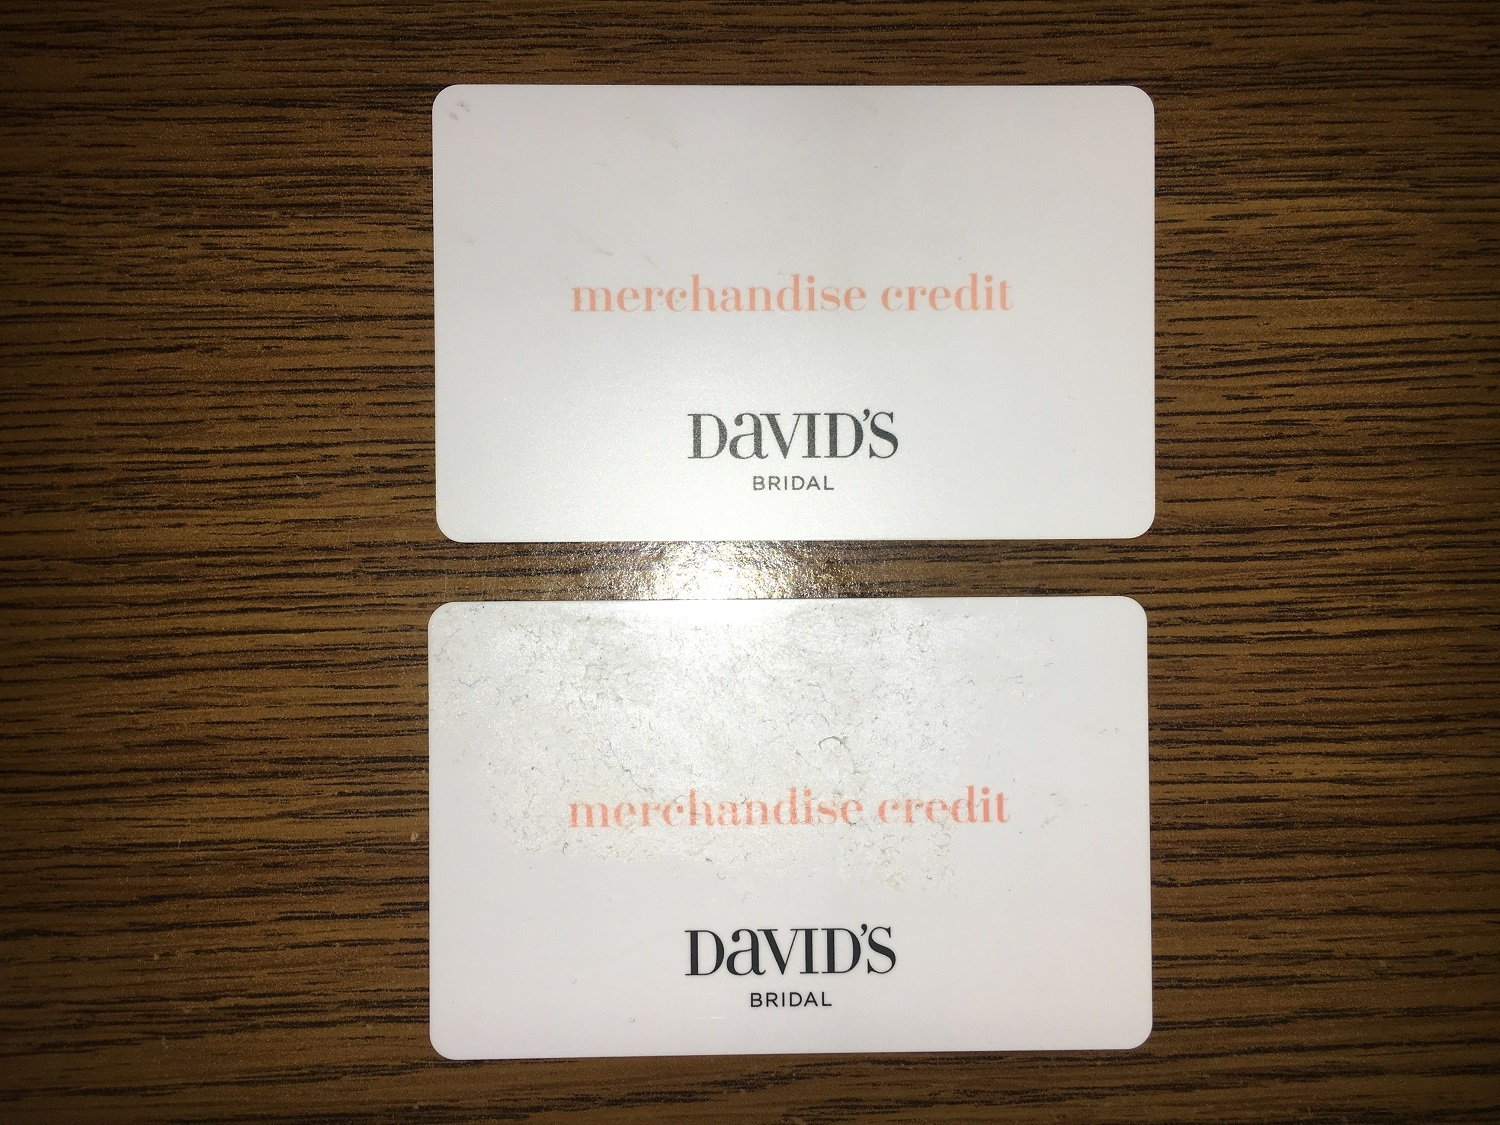 F/S David\'s Bridal Merchandise Credit Gift Cards PIP — The Knot